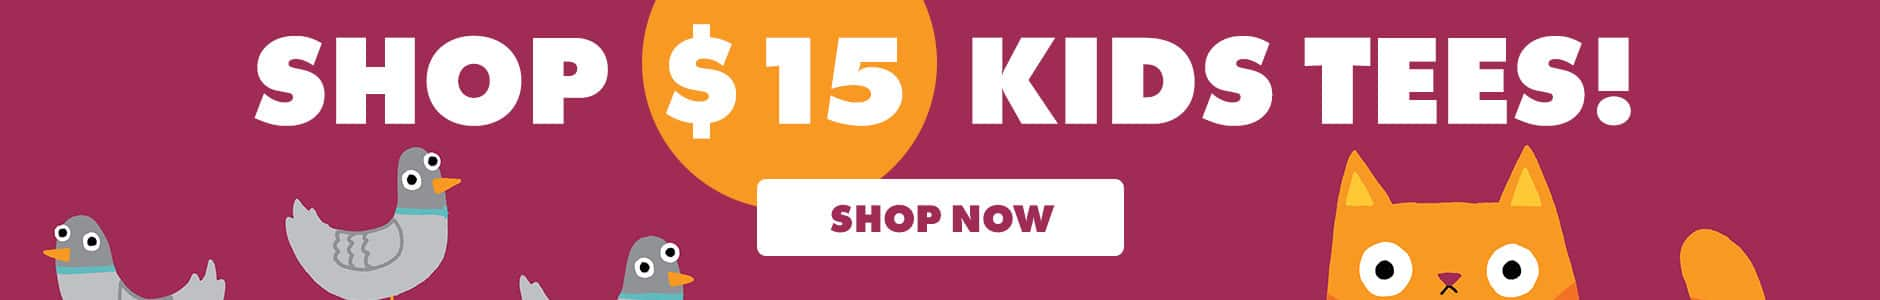 Shop $15 kids tees! Shop now.